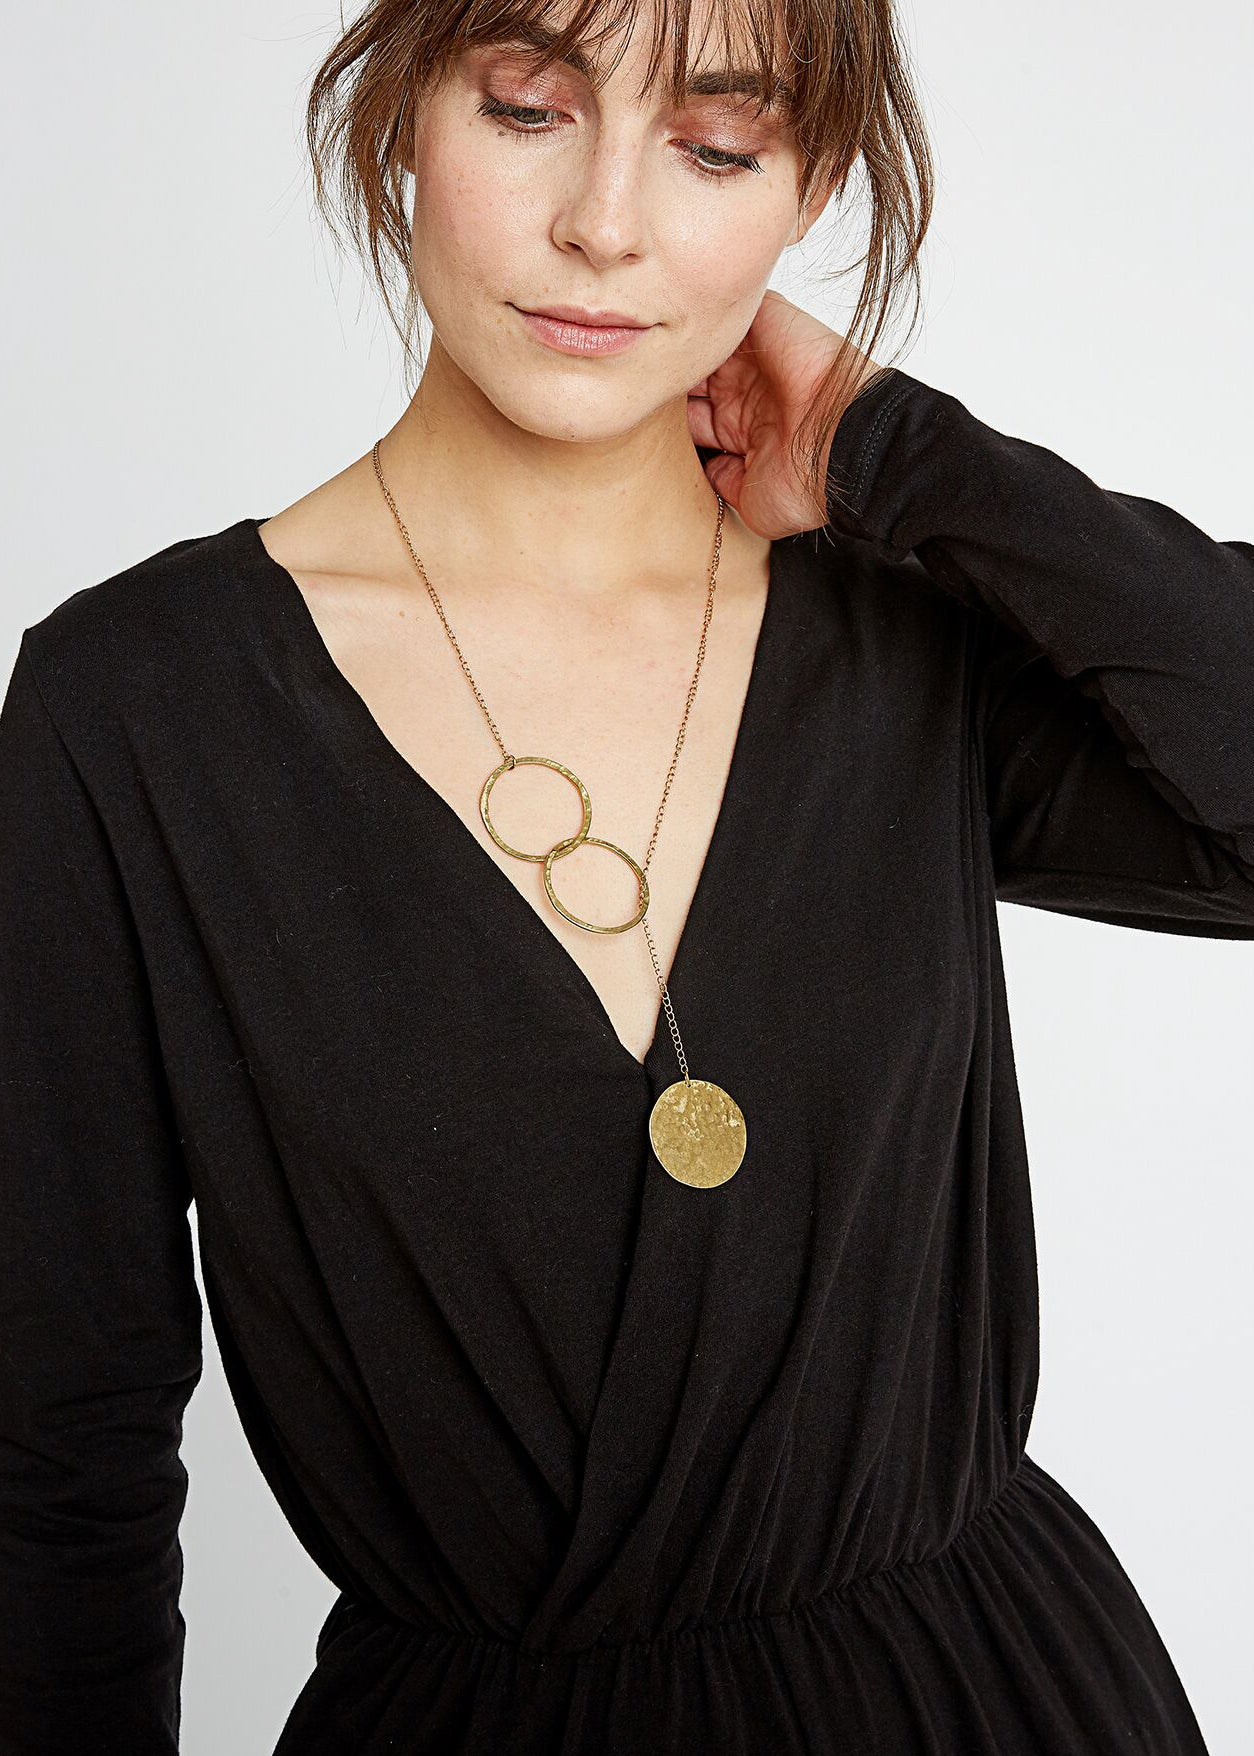 Threaded Disc Necklace in Brass-Jewellery-Sancho's Dress